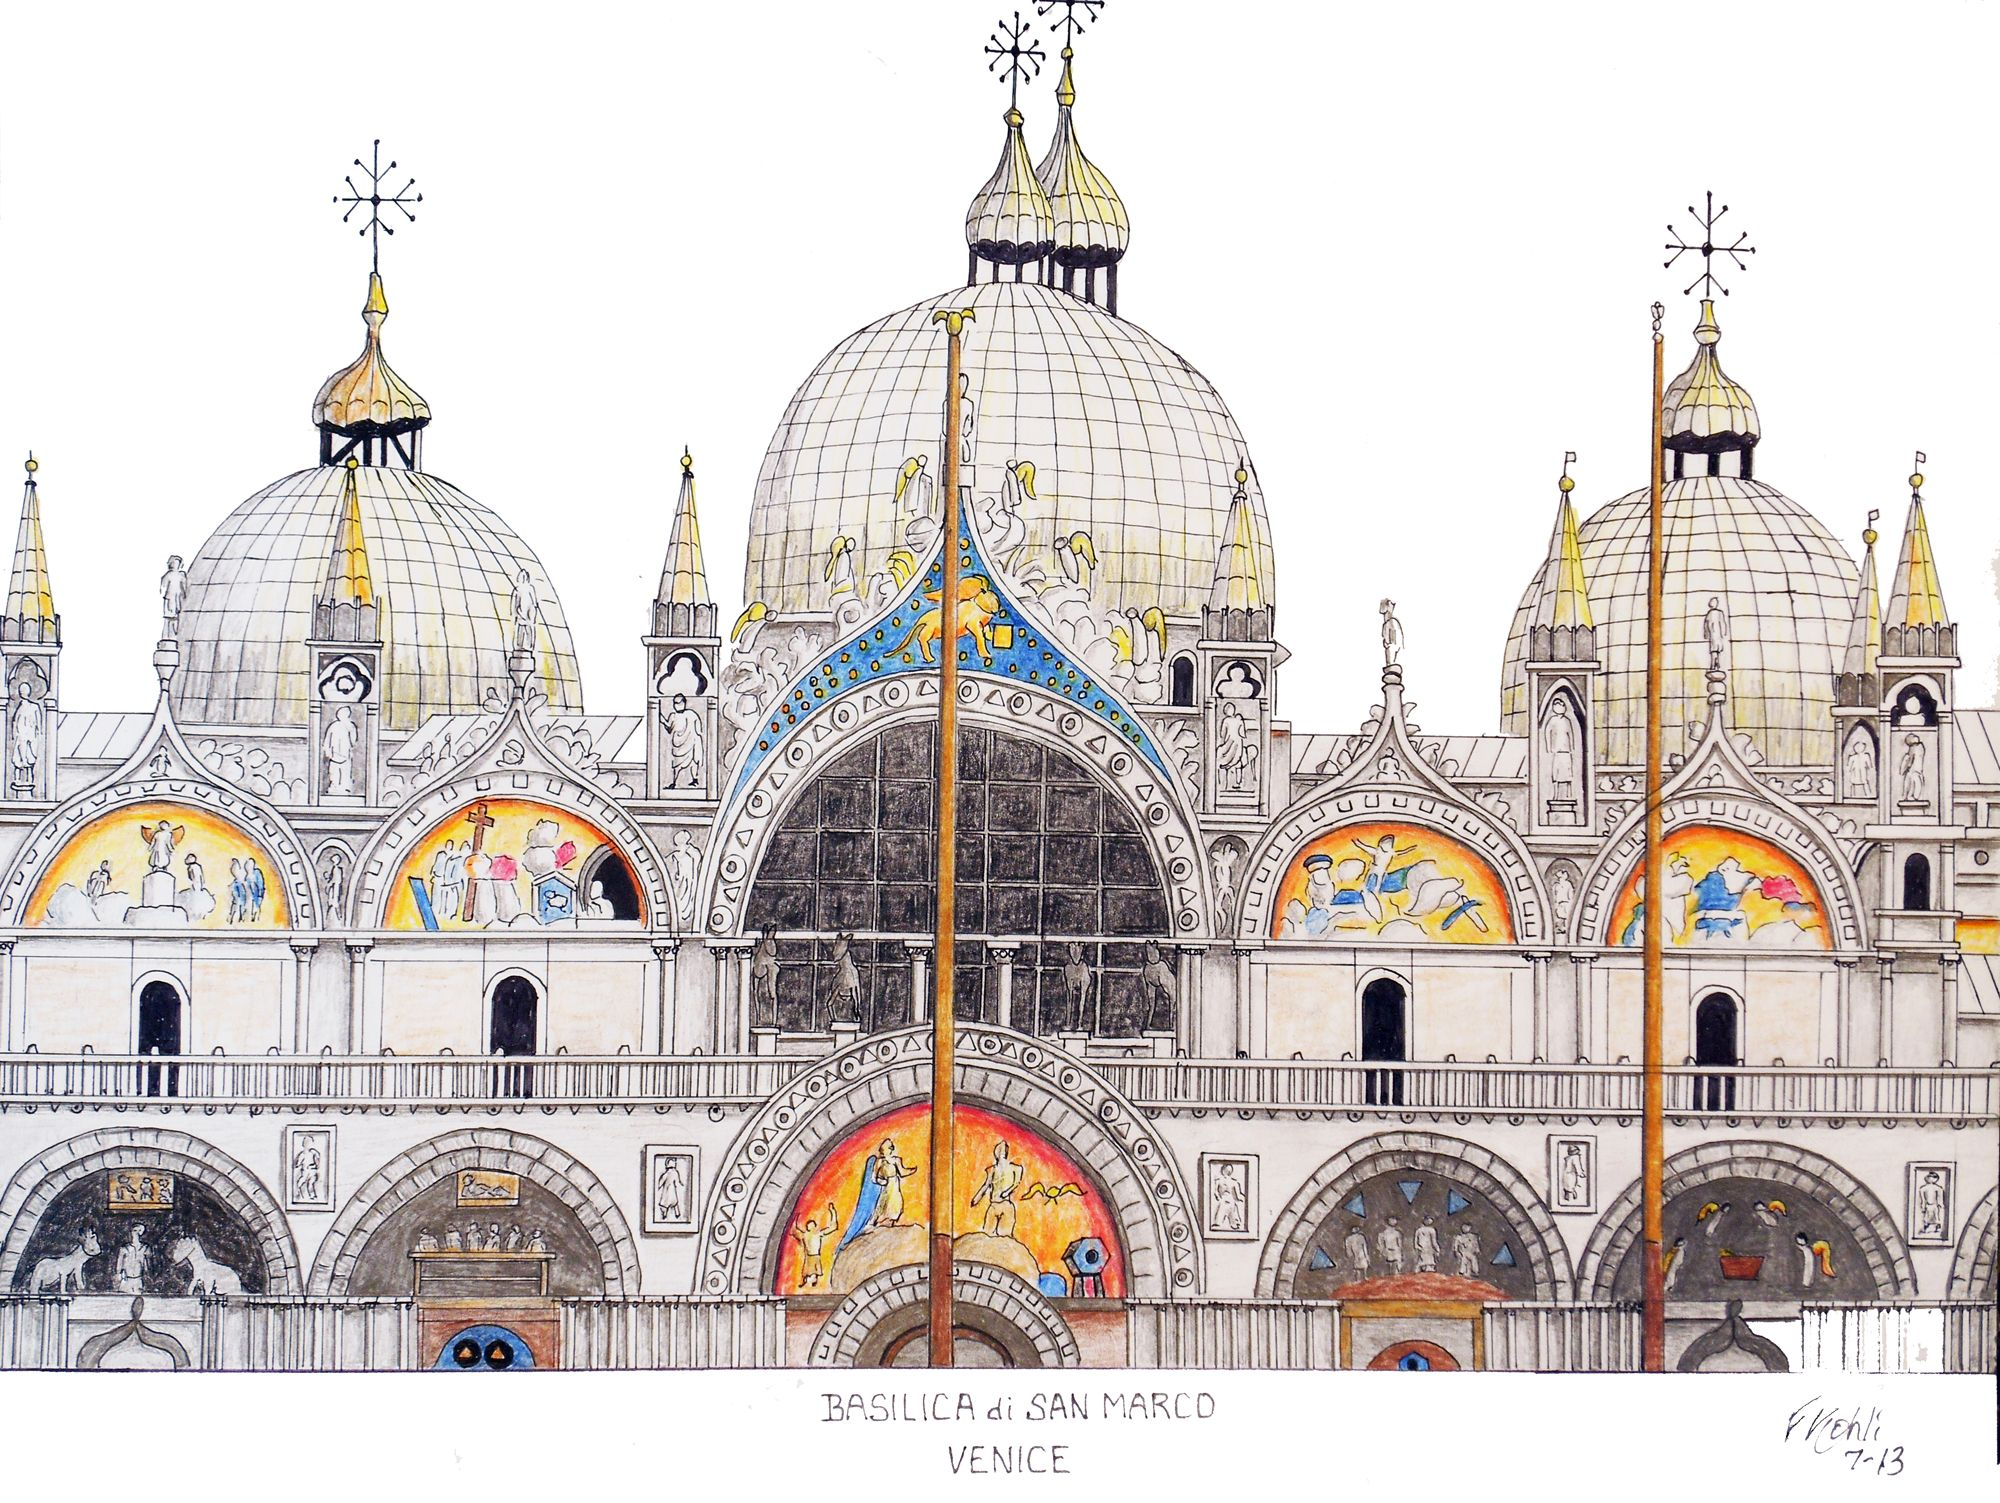 VENICE CATHEDRAL - ITALY Pen and pencil drawing. For prints, go to: http://frederic-kohli.artistwebsites.com